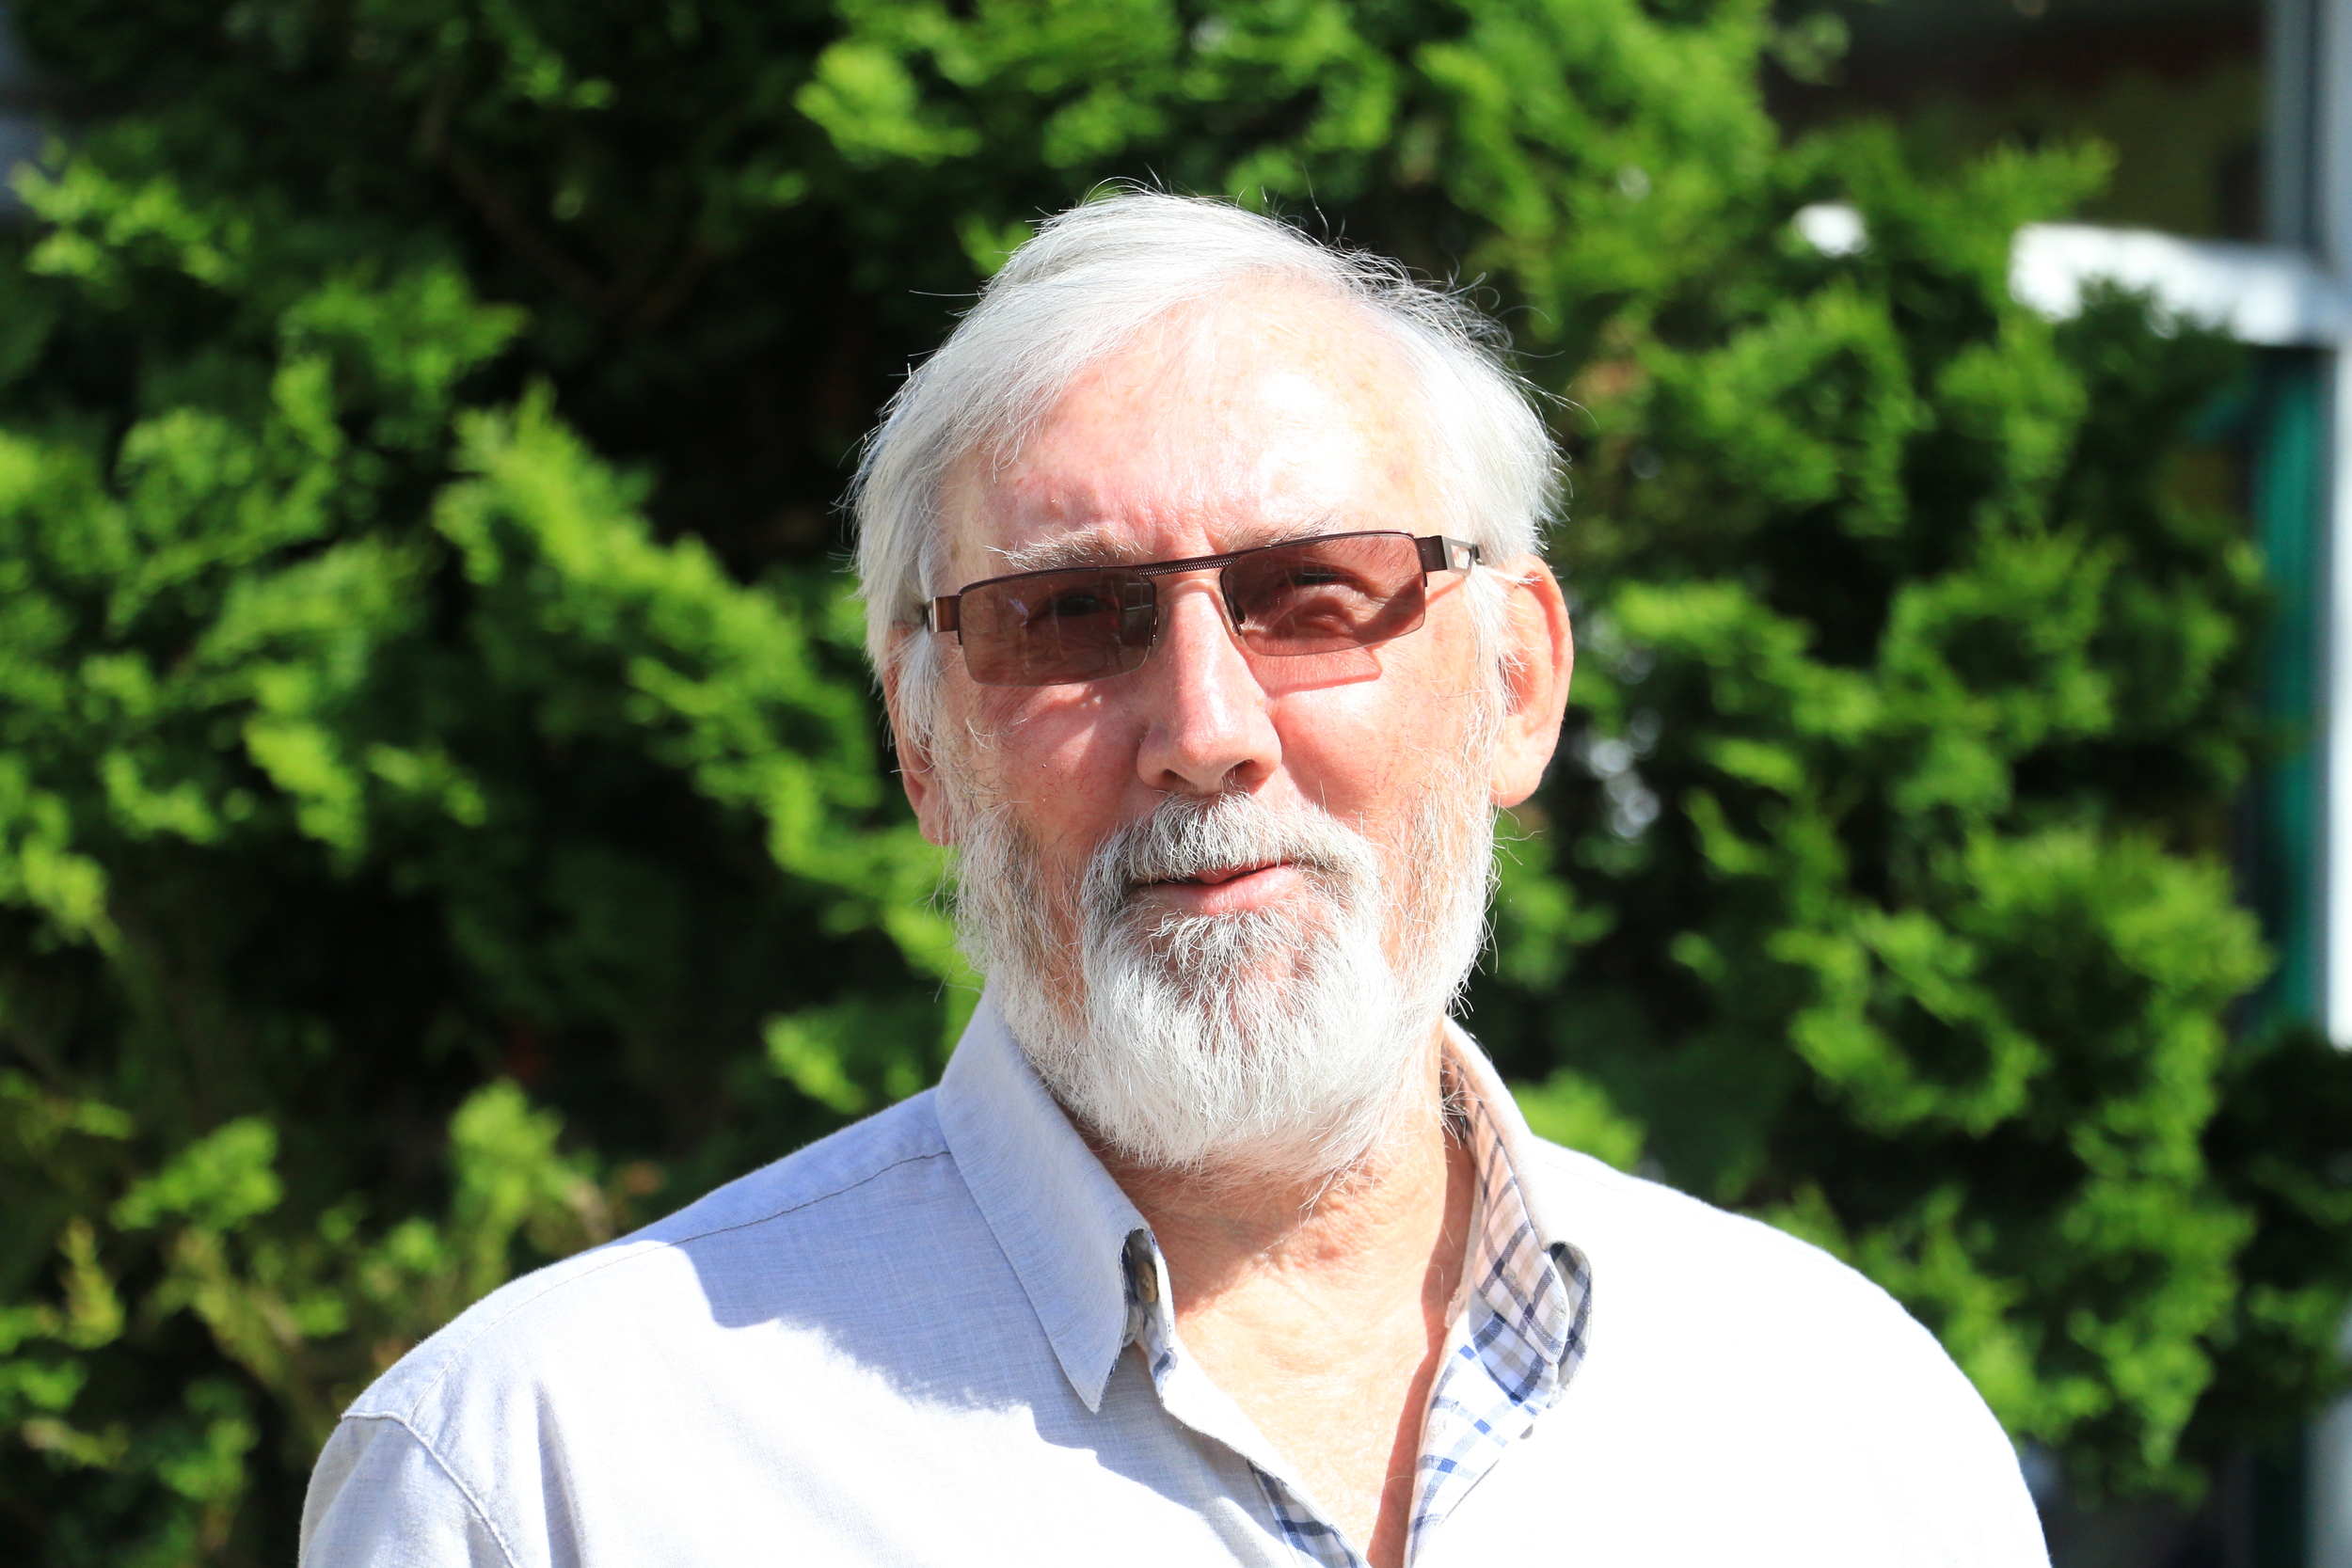 Rev. Paul Griffiths, Retired Clergy